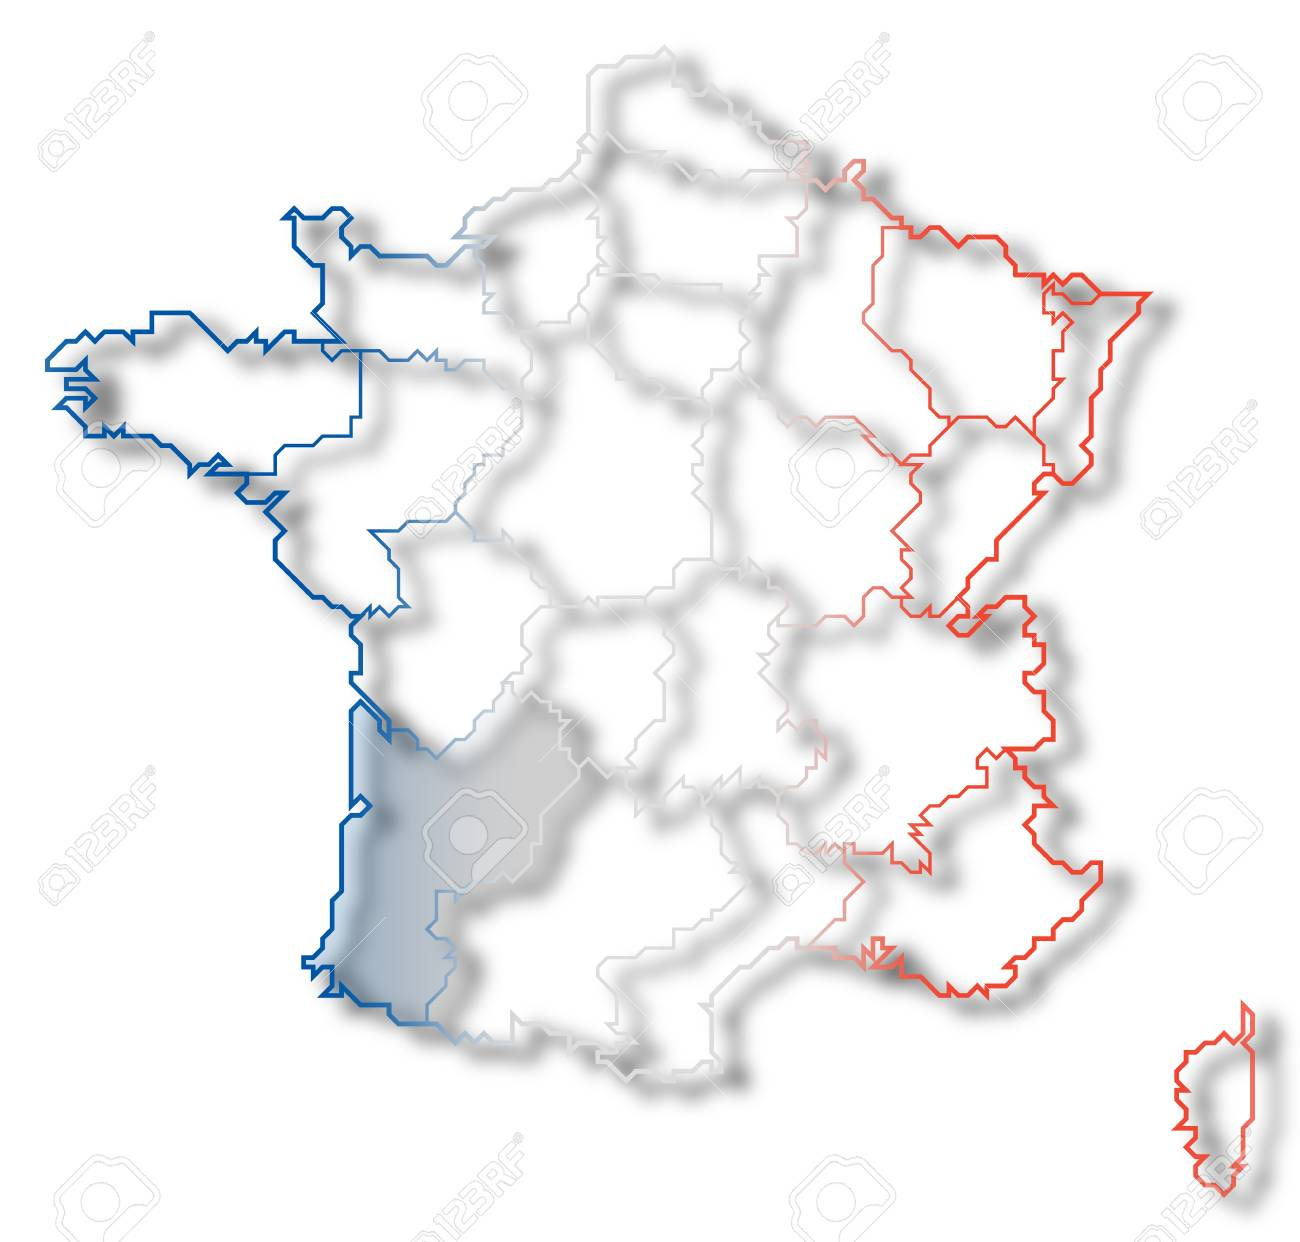 Political Map Of France With The Several Regions Where Aquitaine